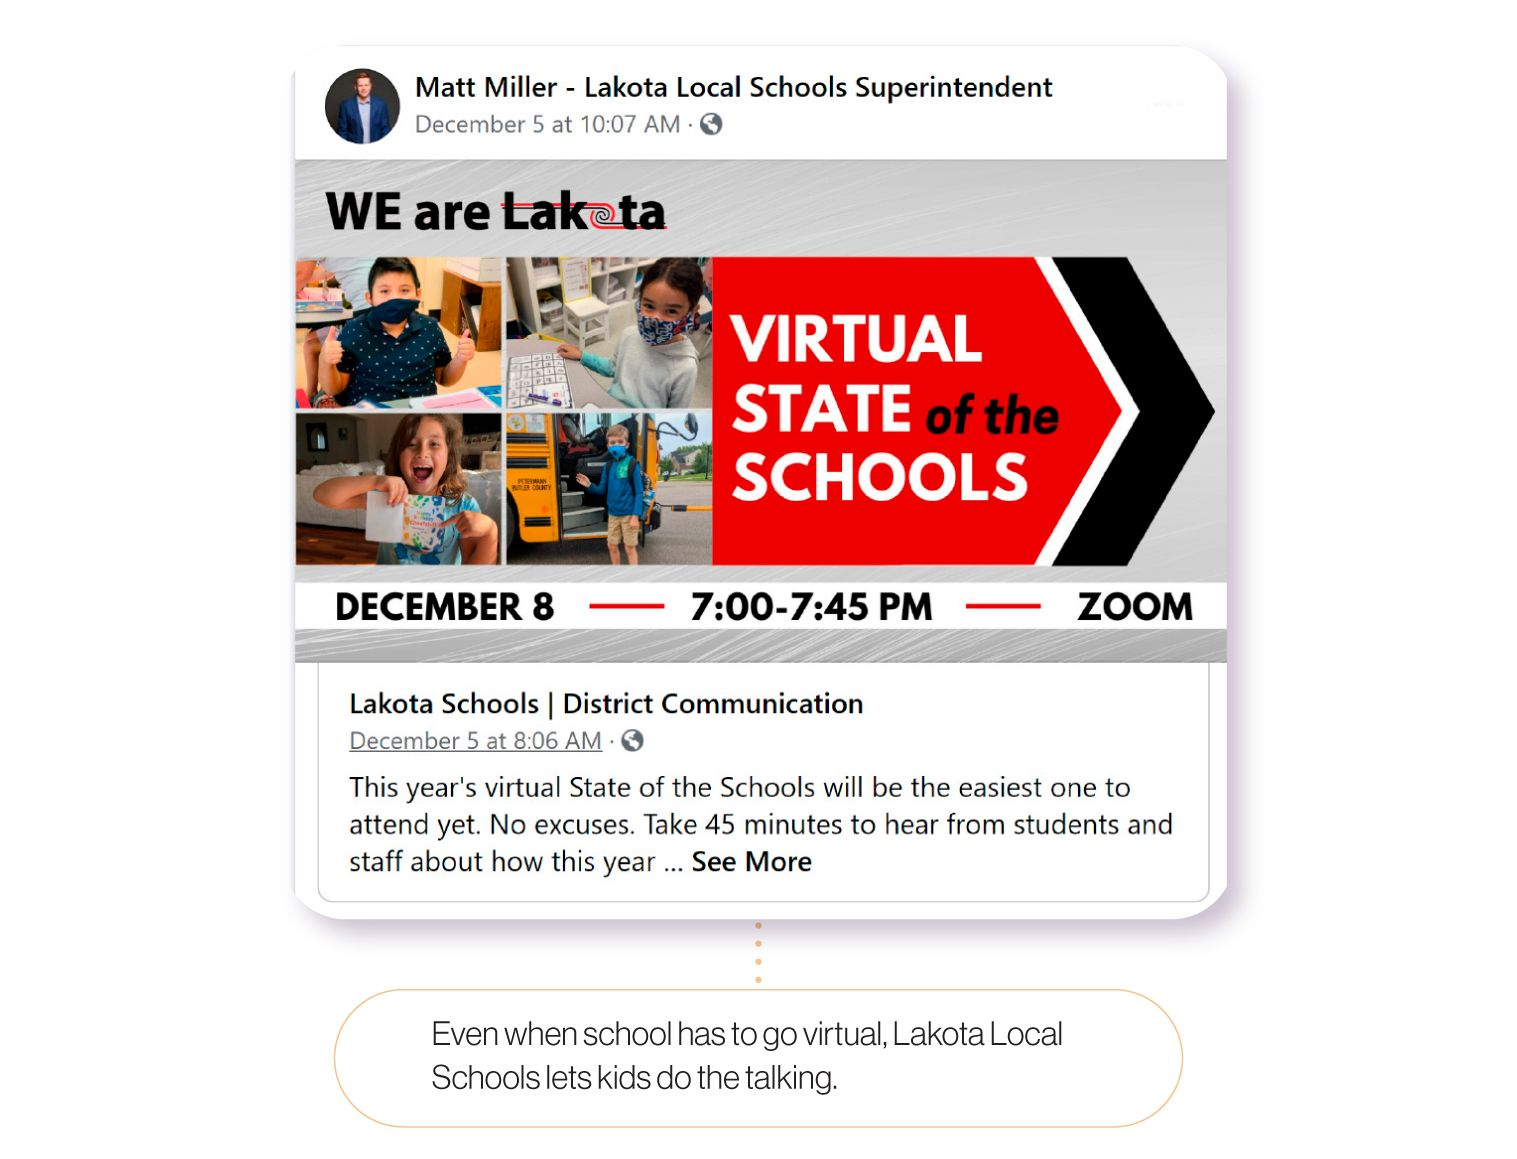 Image: A Facebook post from Lakota Local Schools Superintendent Matt Miller, highlighting students as part of his State of the Schools. Even when schools go virtual, Lakota Local Schools lets students do the talking.